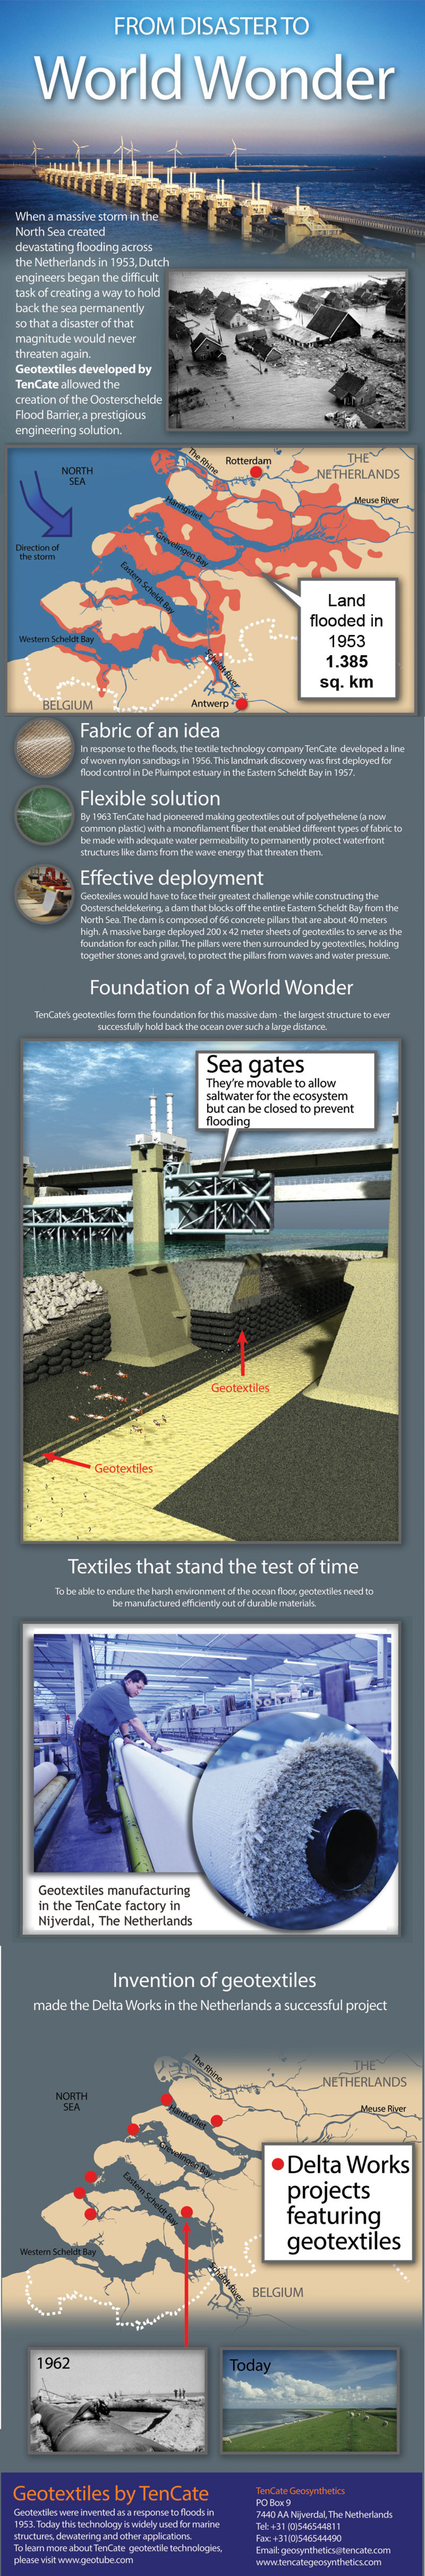 The Role of Geotextile in Delta Works Infographic